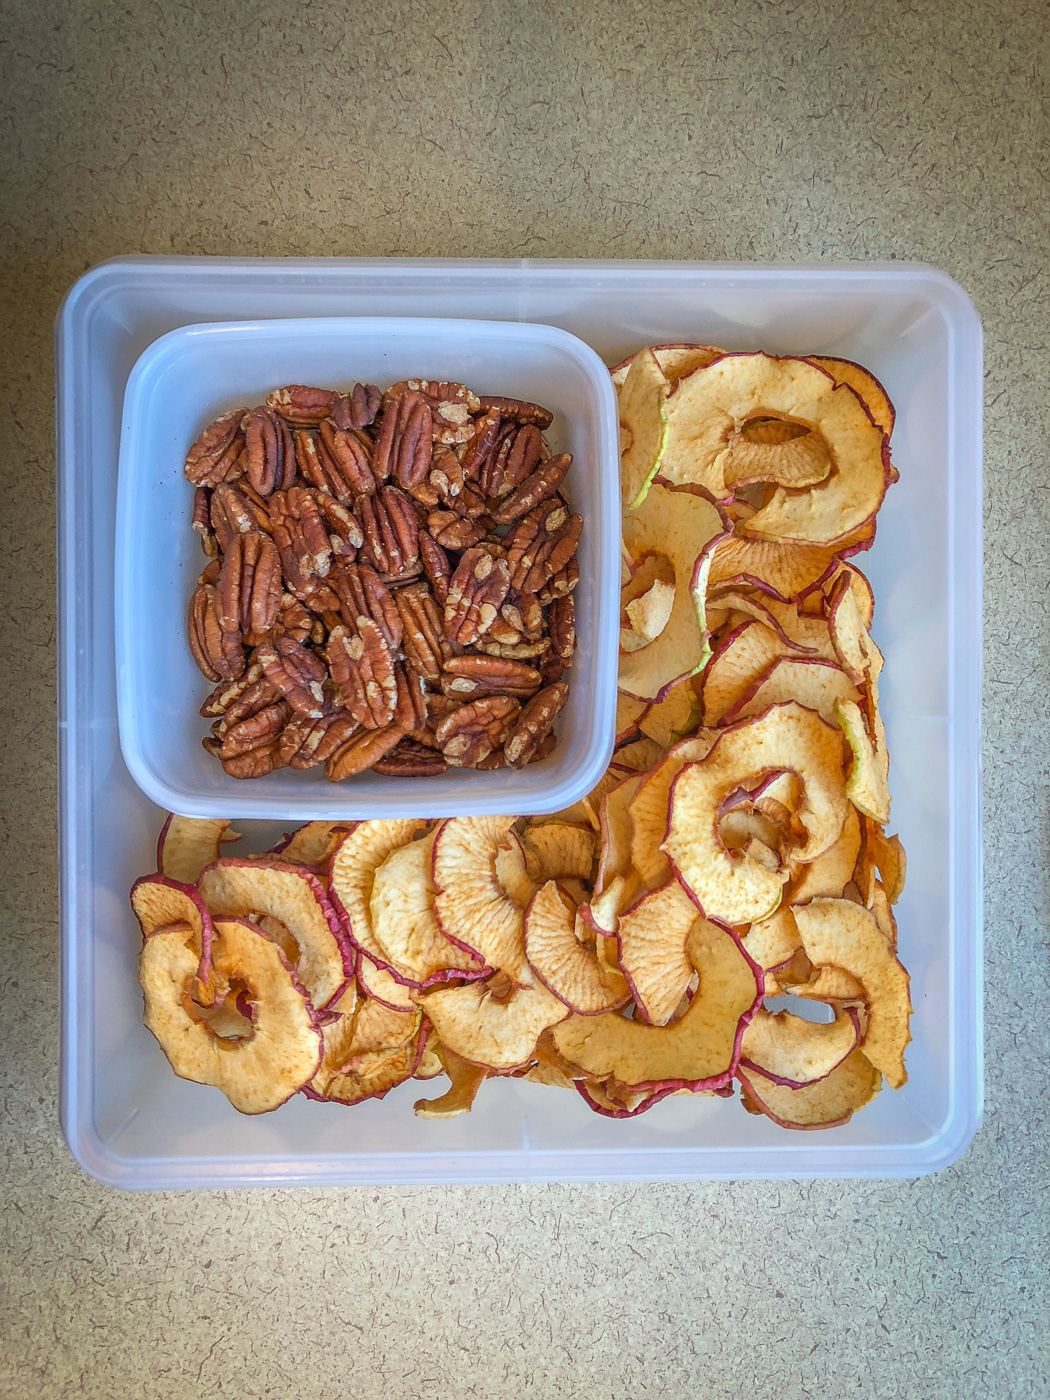 Plastic container with toasted pecans and apple chips